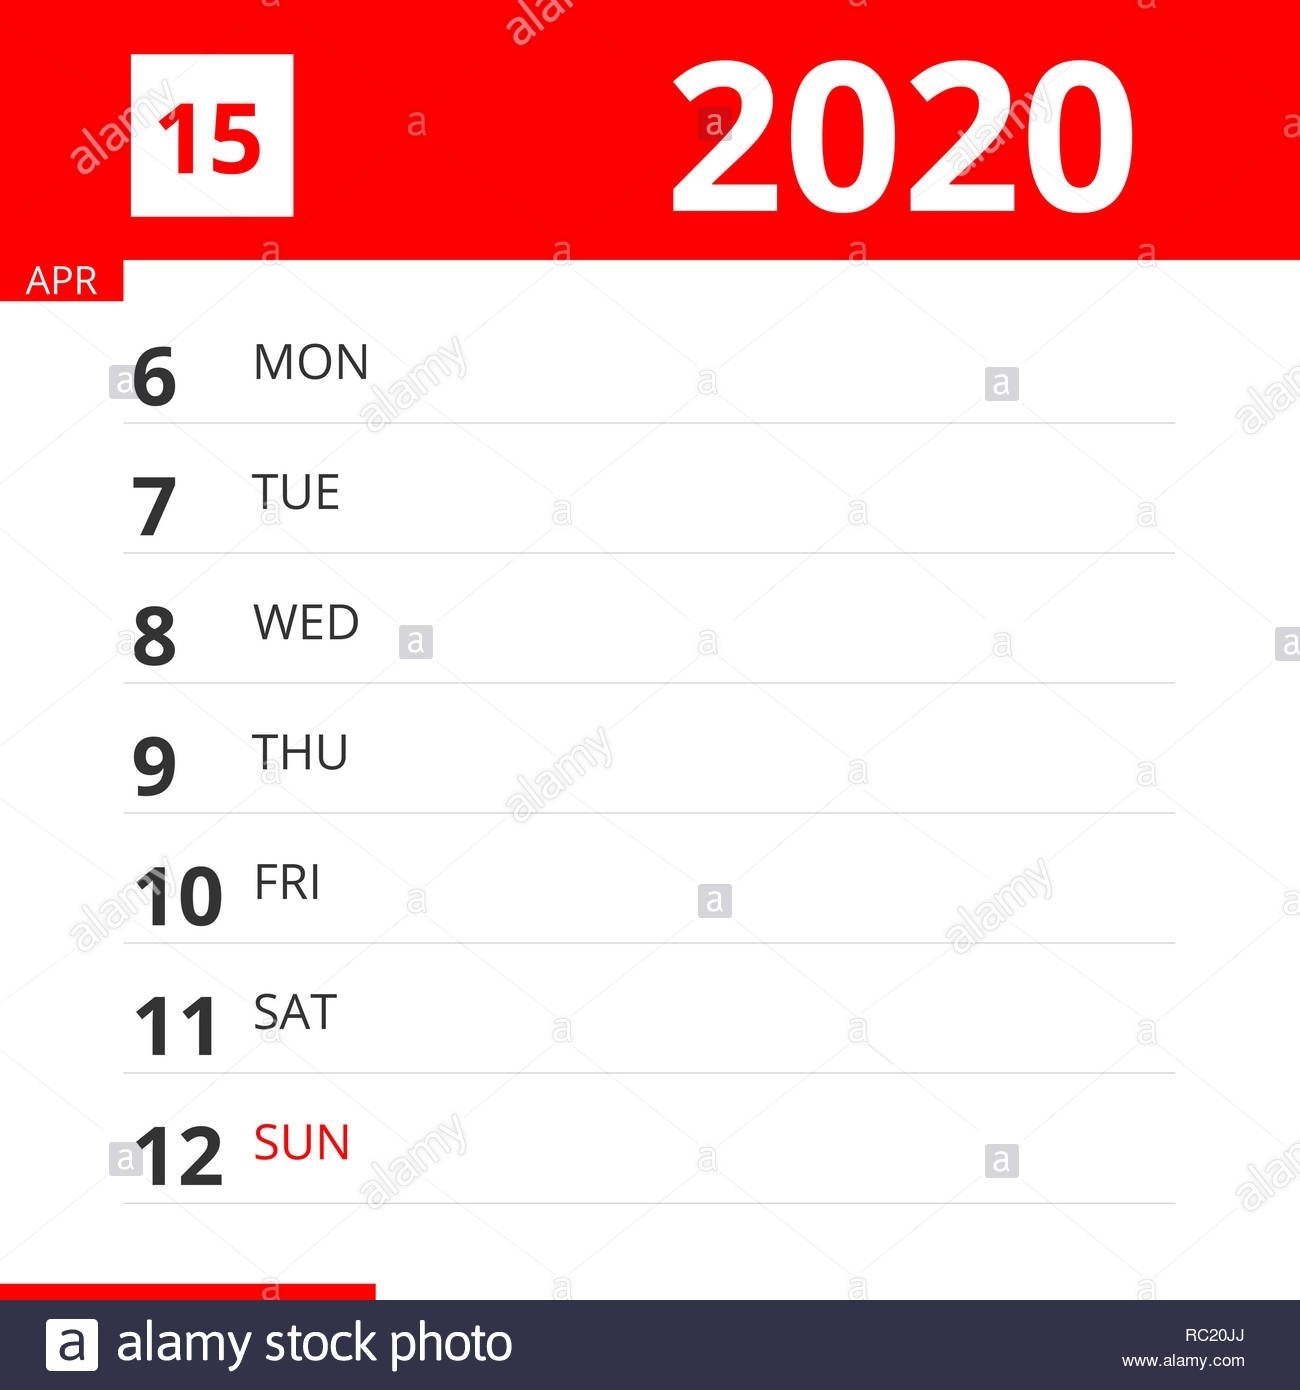 Calendar Planner For Week 15 In 2020, Ends April 12, 2020